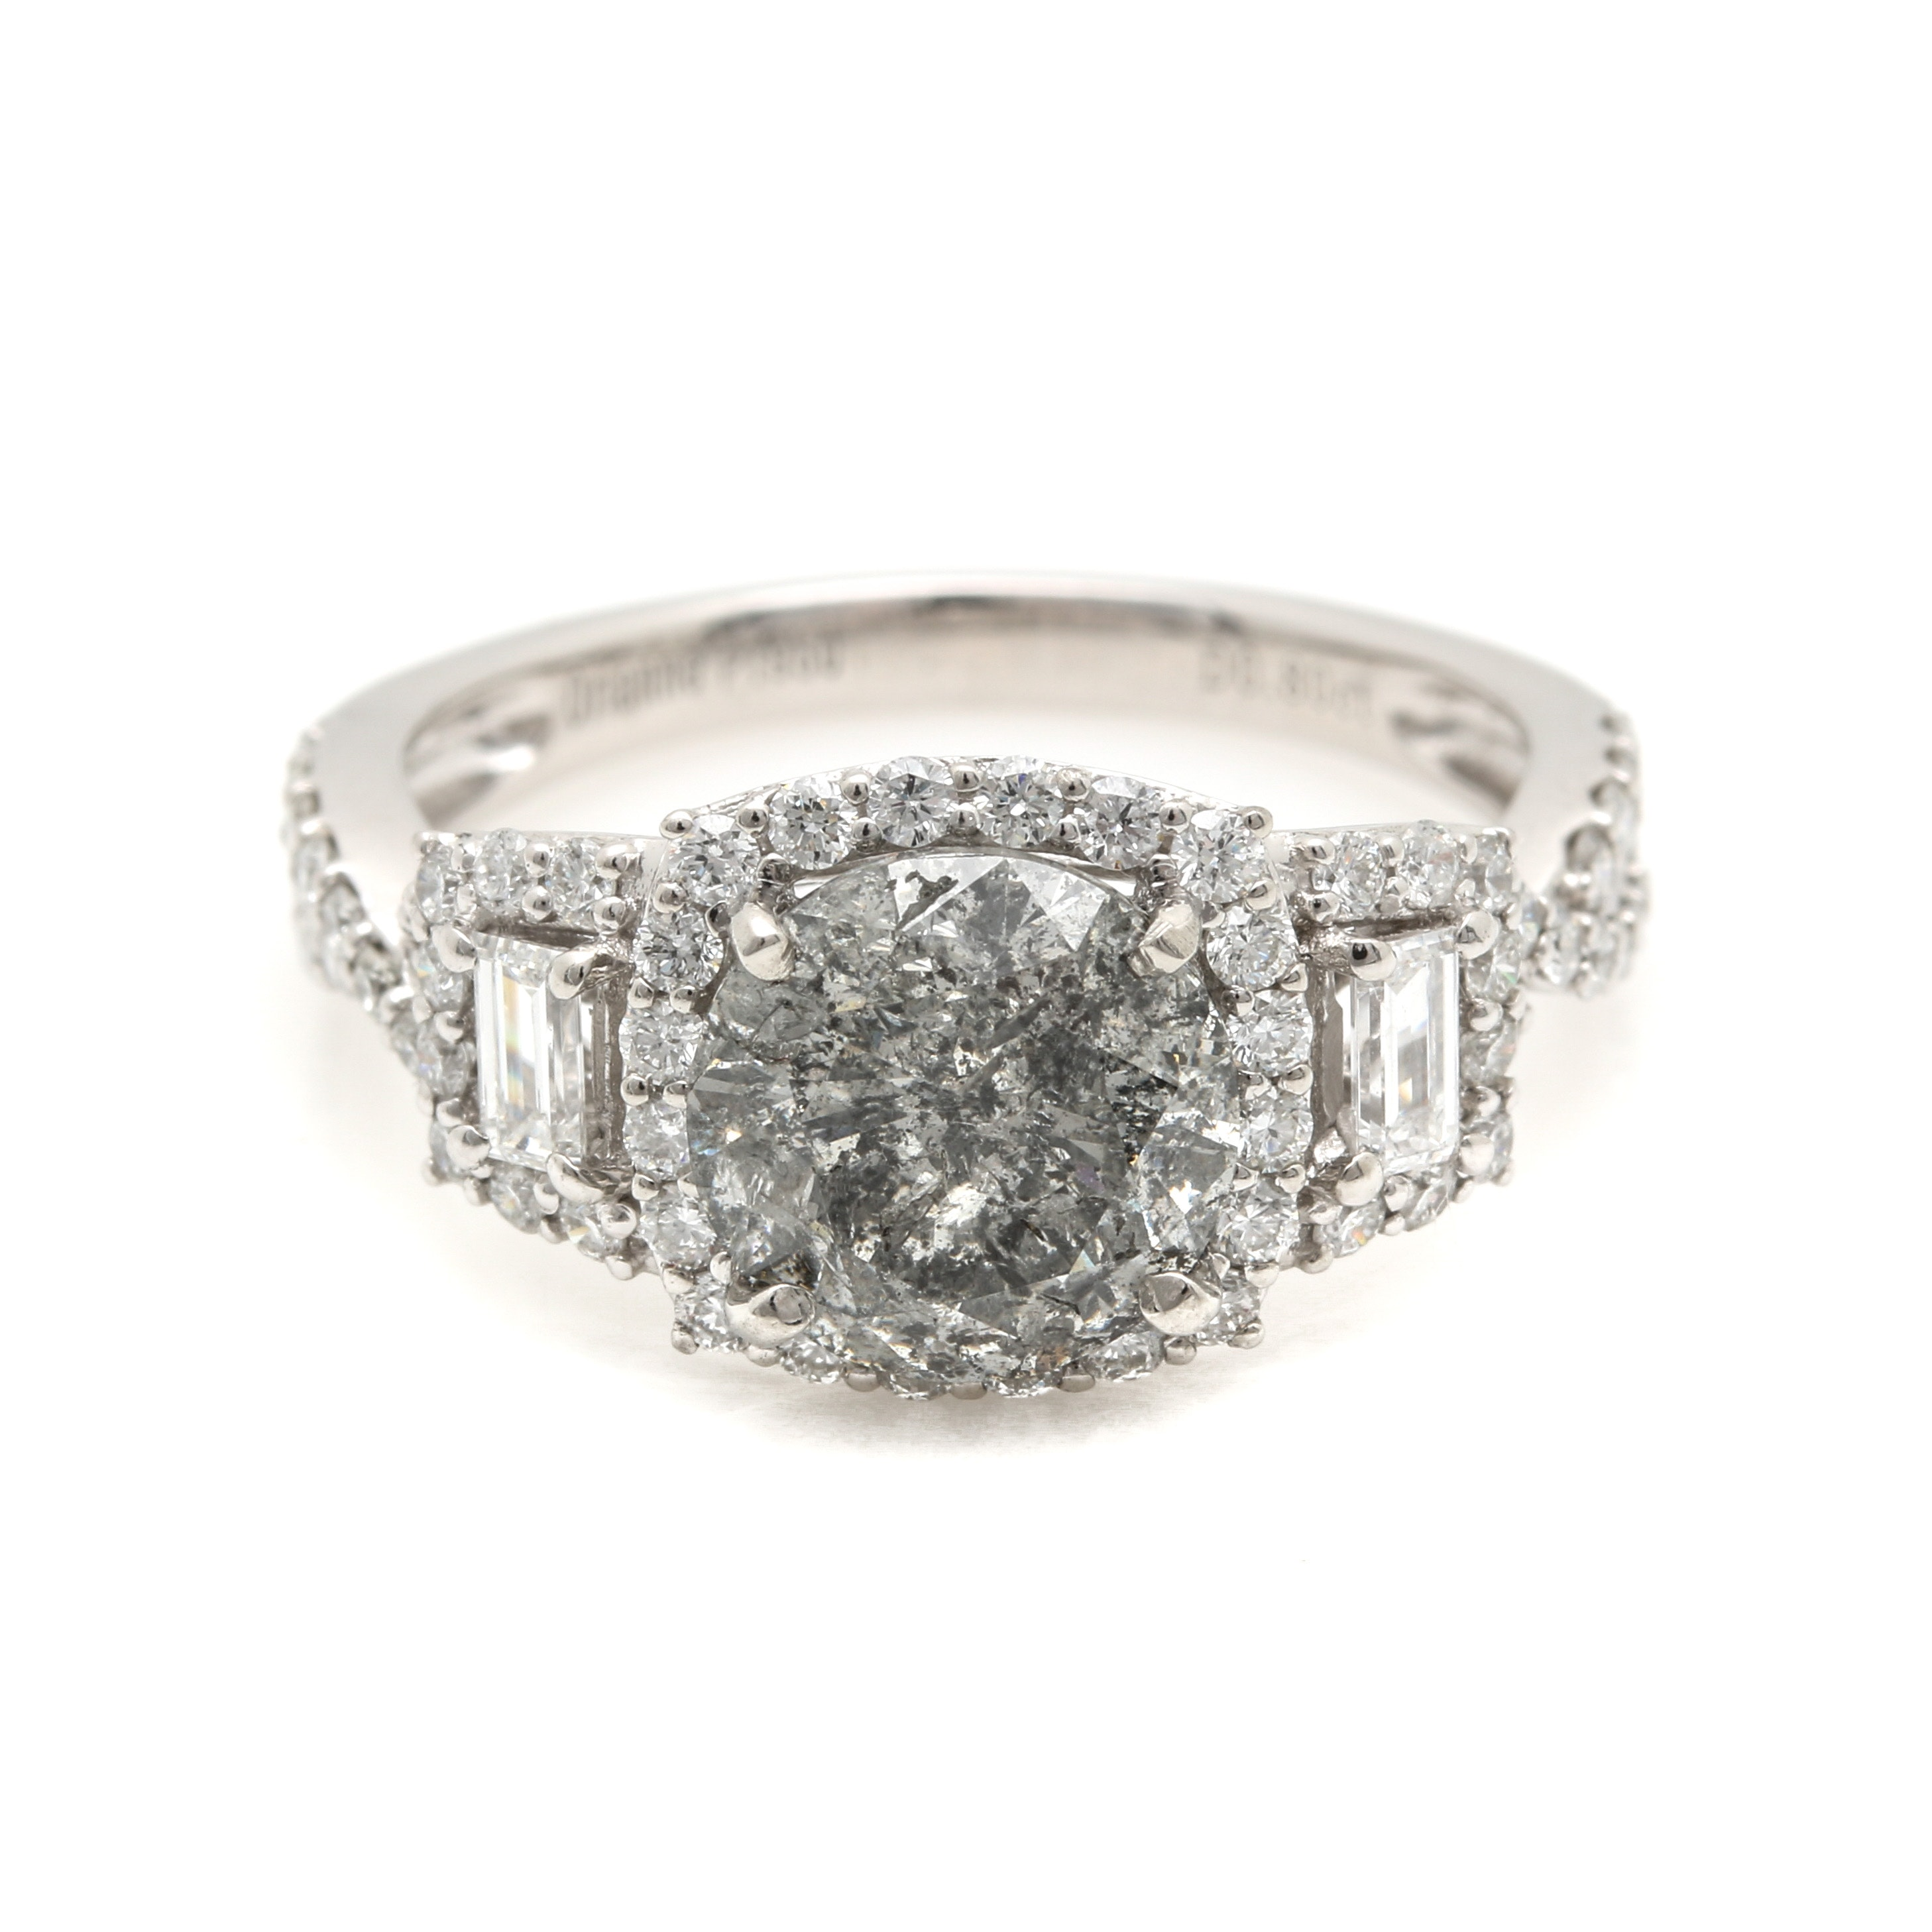 Platinum 2.93 CTW Diamond Ring